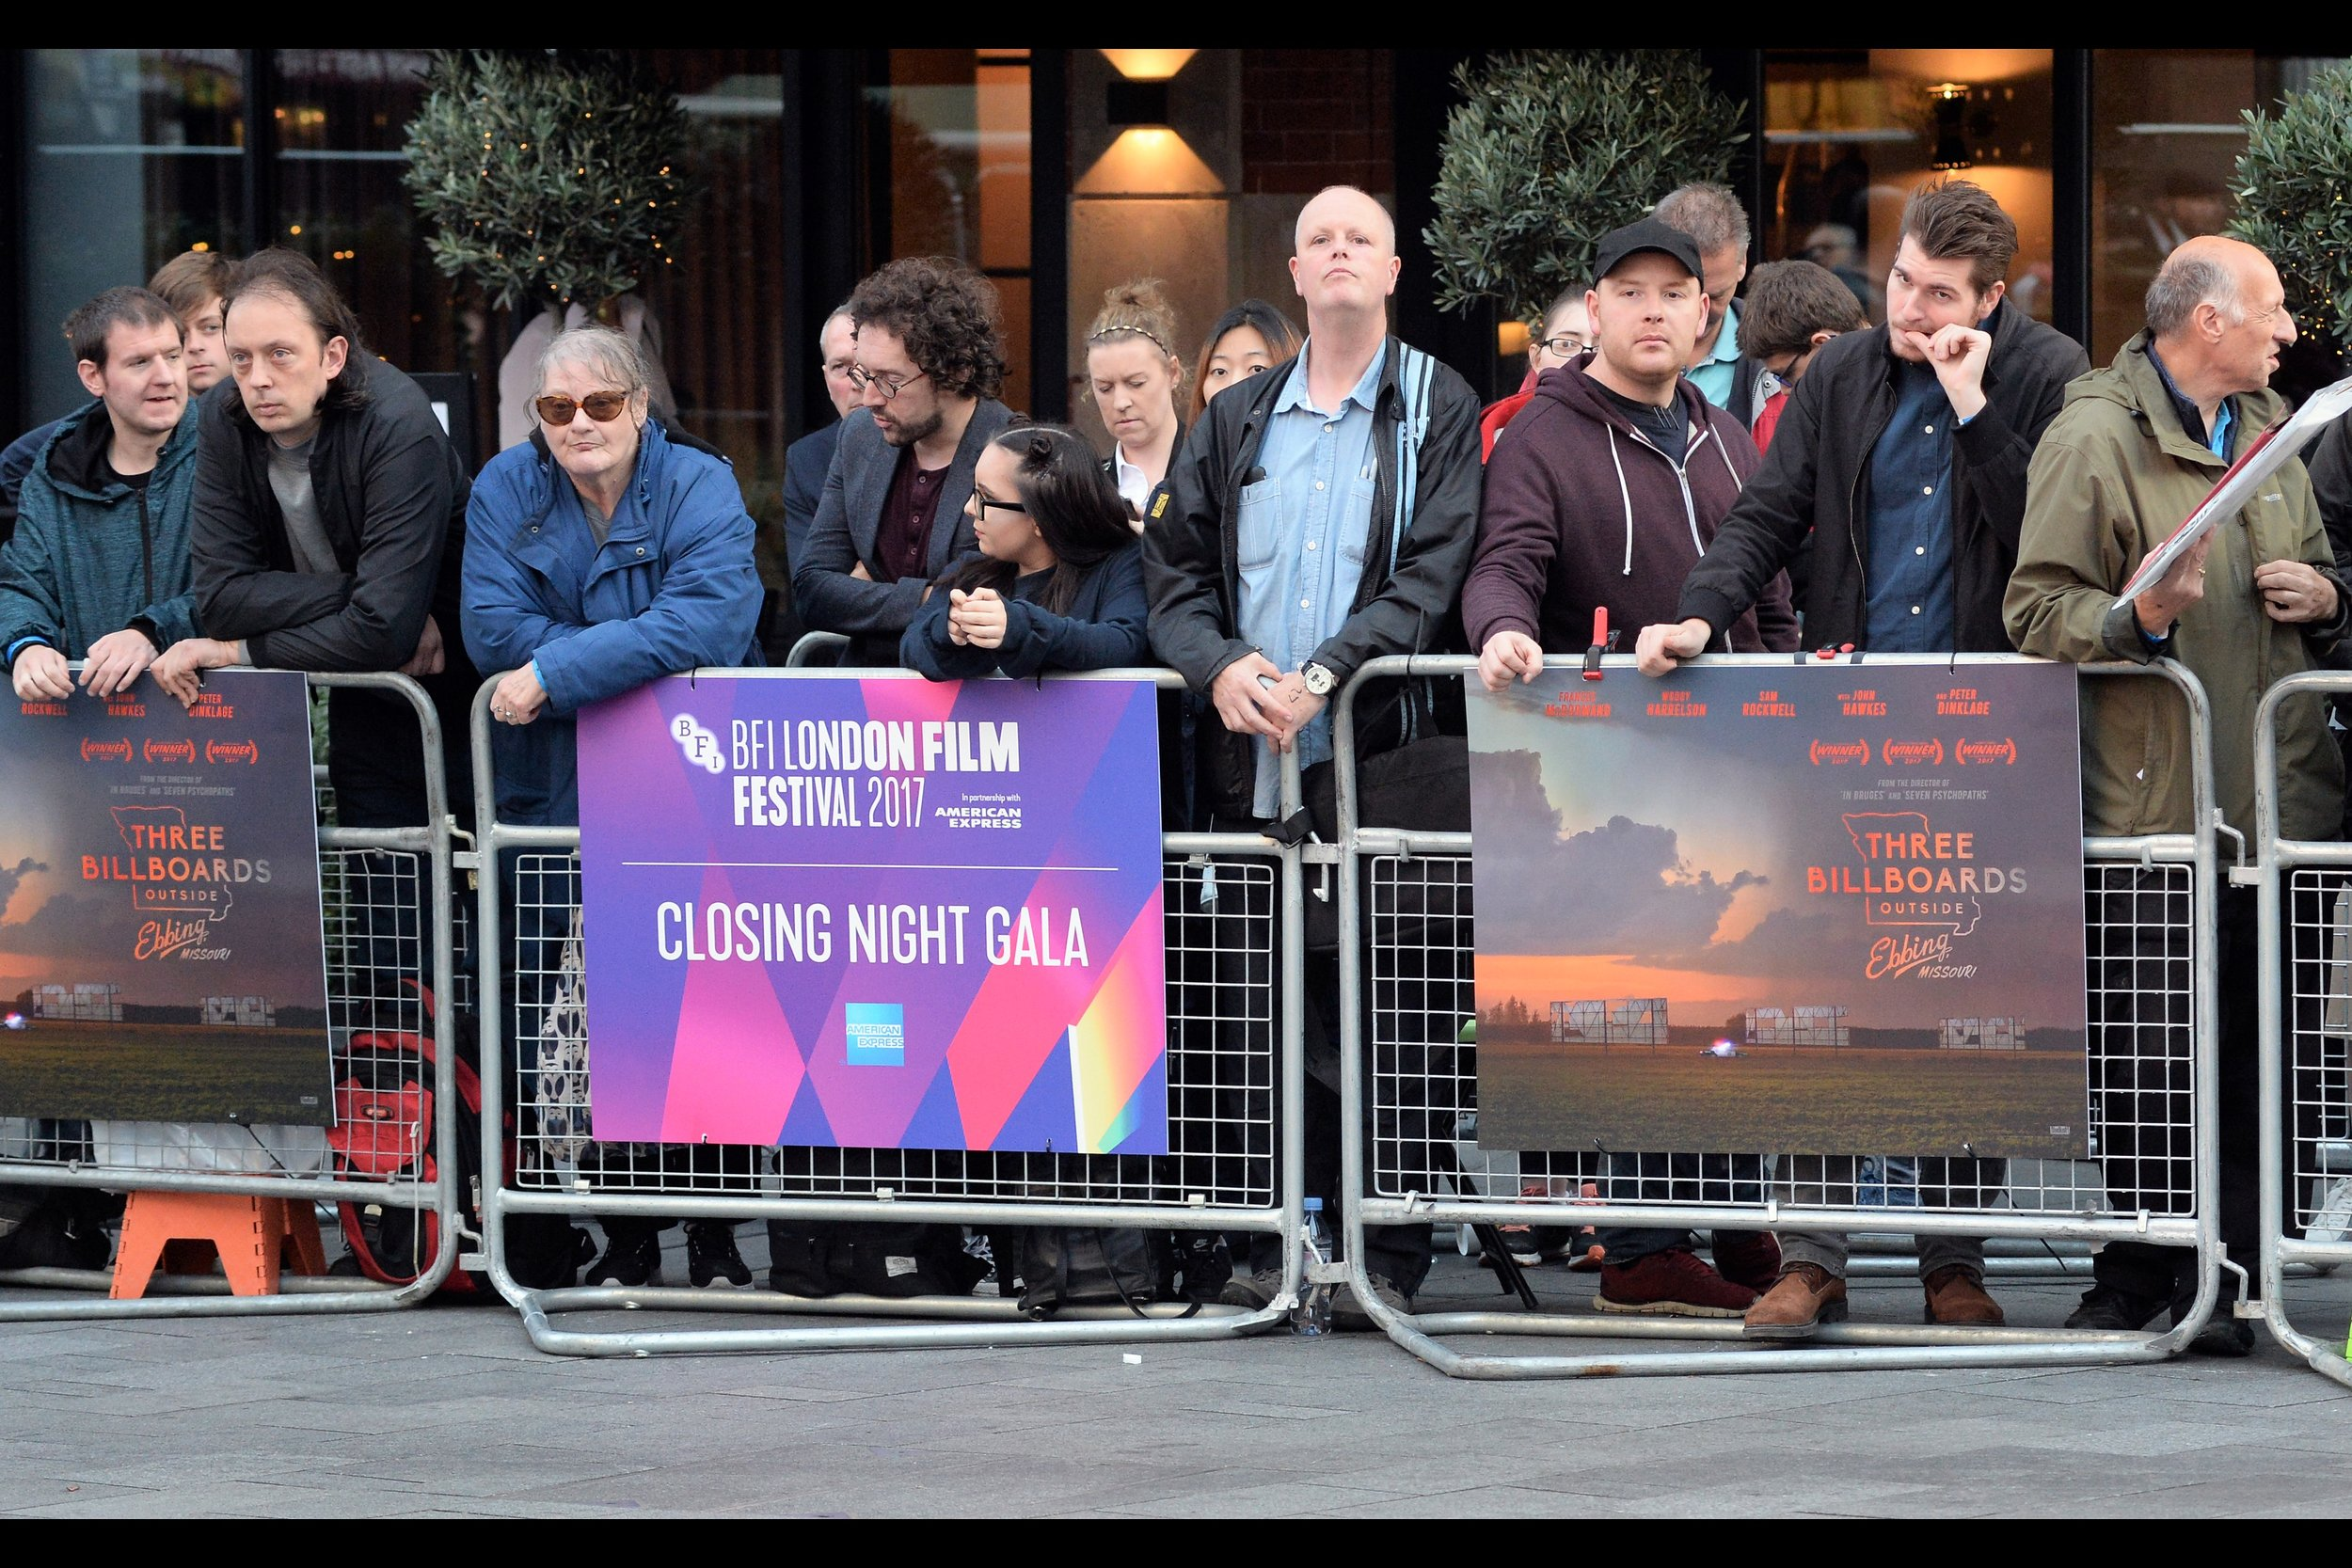 We've finally hit the end of BFI London Film Festival 2017, and some have weathered it better than others.